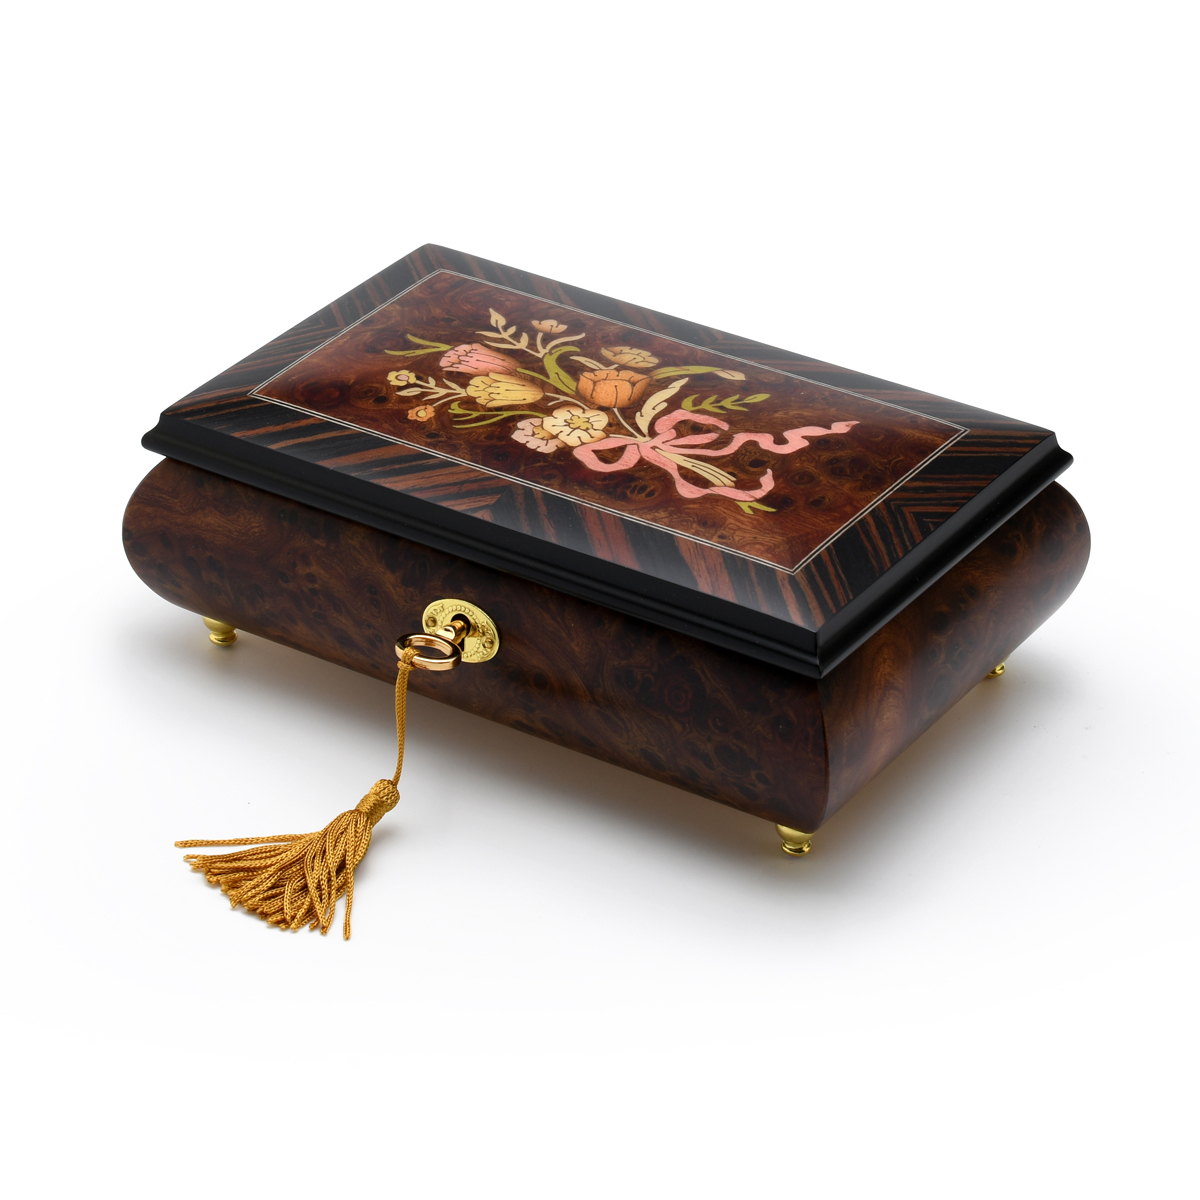 Classic Music Box Features Nostalgic Design of A Floral Bouquet Tied With Pink Ribbon